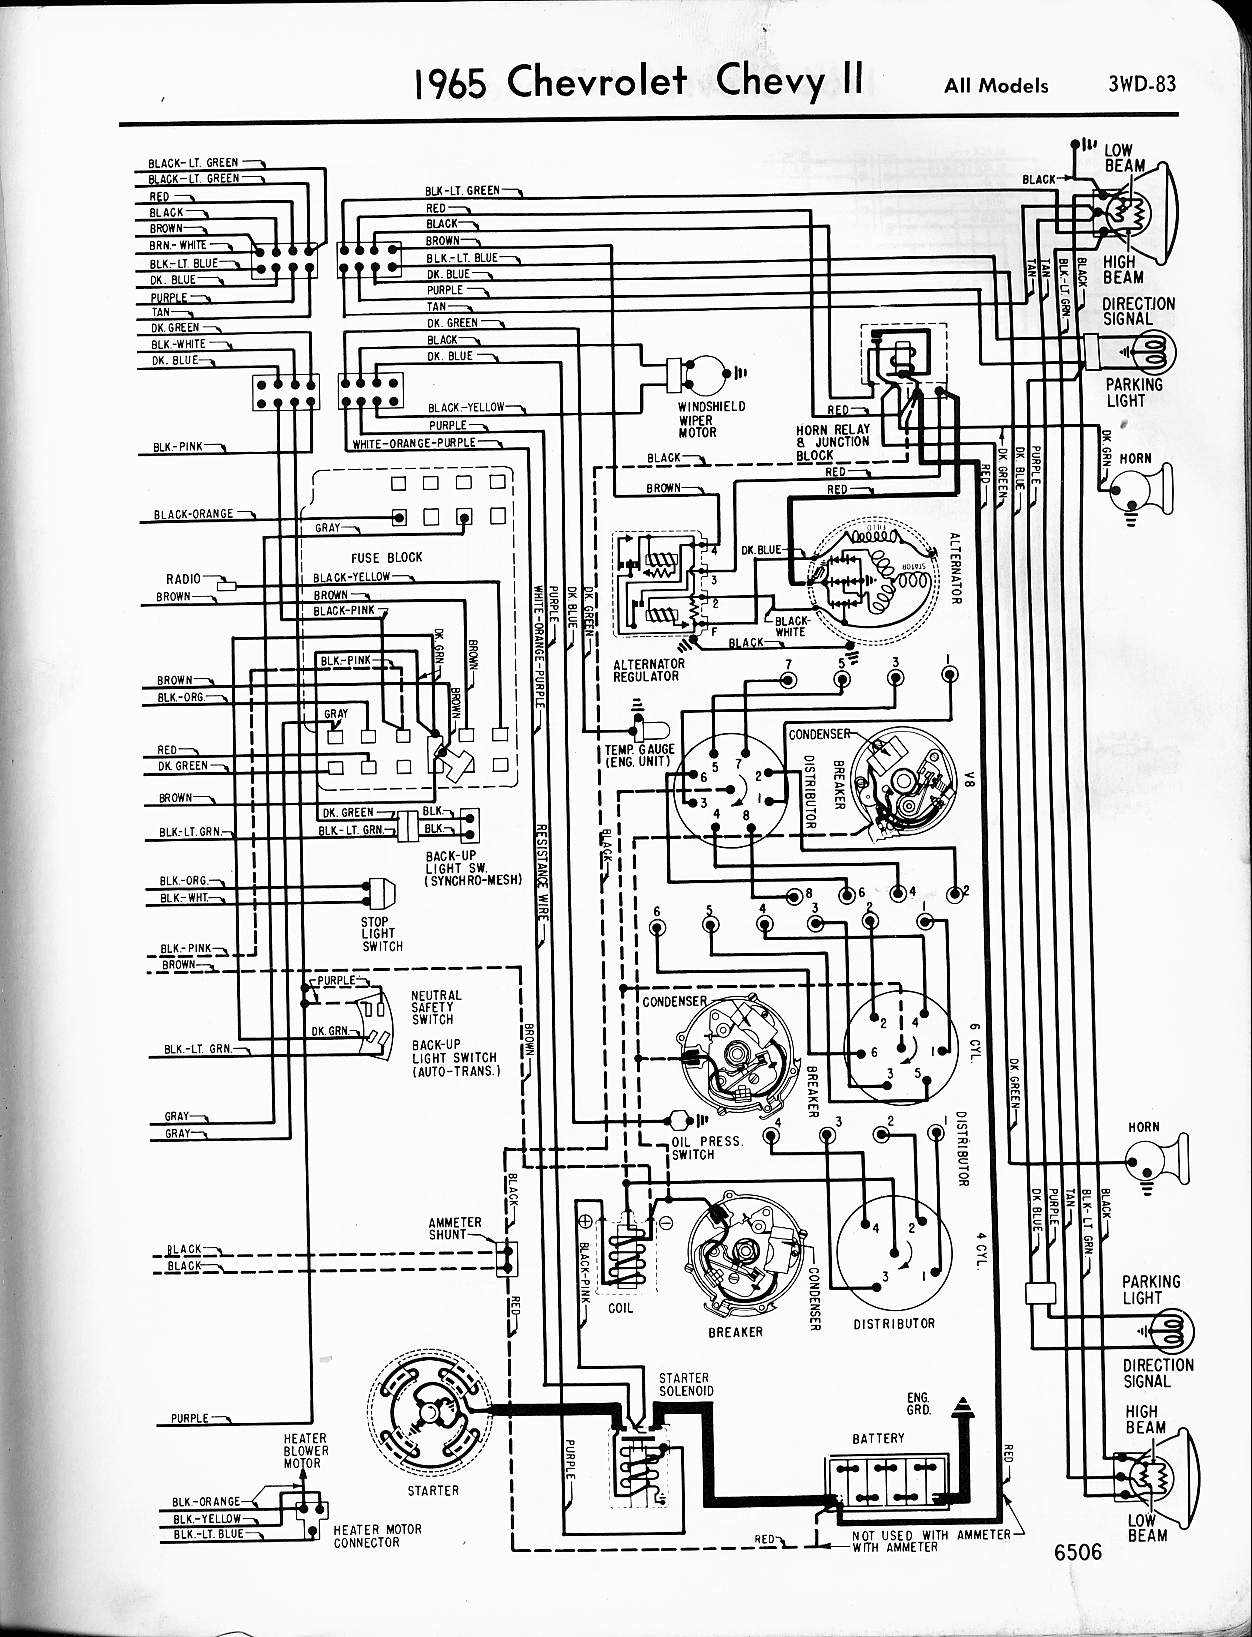 MWireChev65_3WD 083 57 65 chevy wiring diagrams 1965 chevy c10 wiring diagram at gsmportal.co